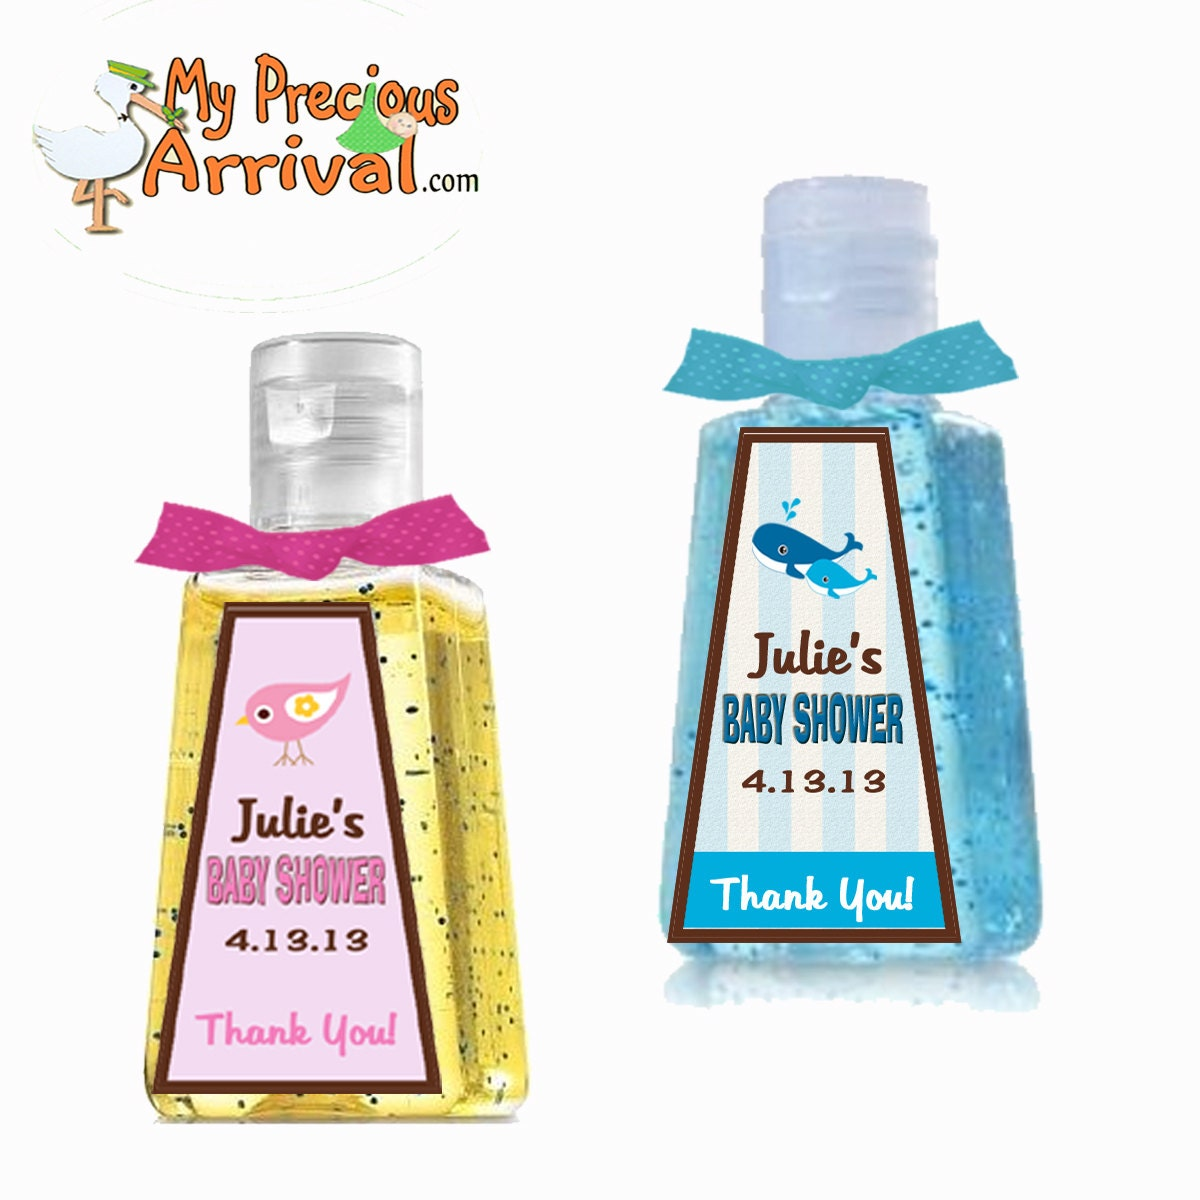 DIGITAL Personalized 1 Oz. Hand Sanitizer Label Favors Baby